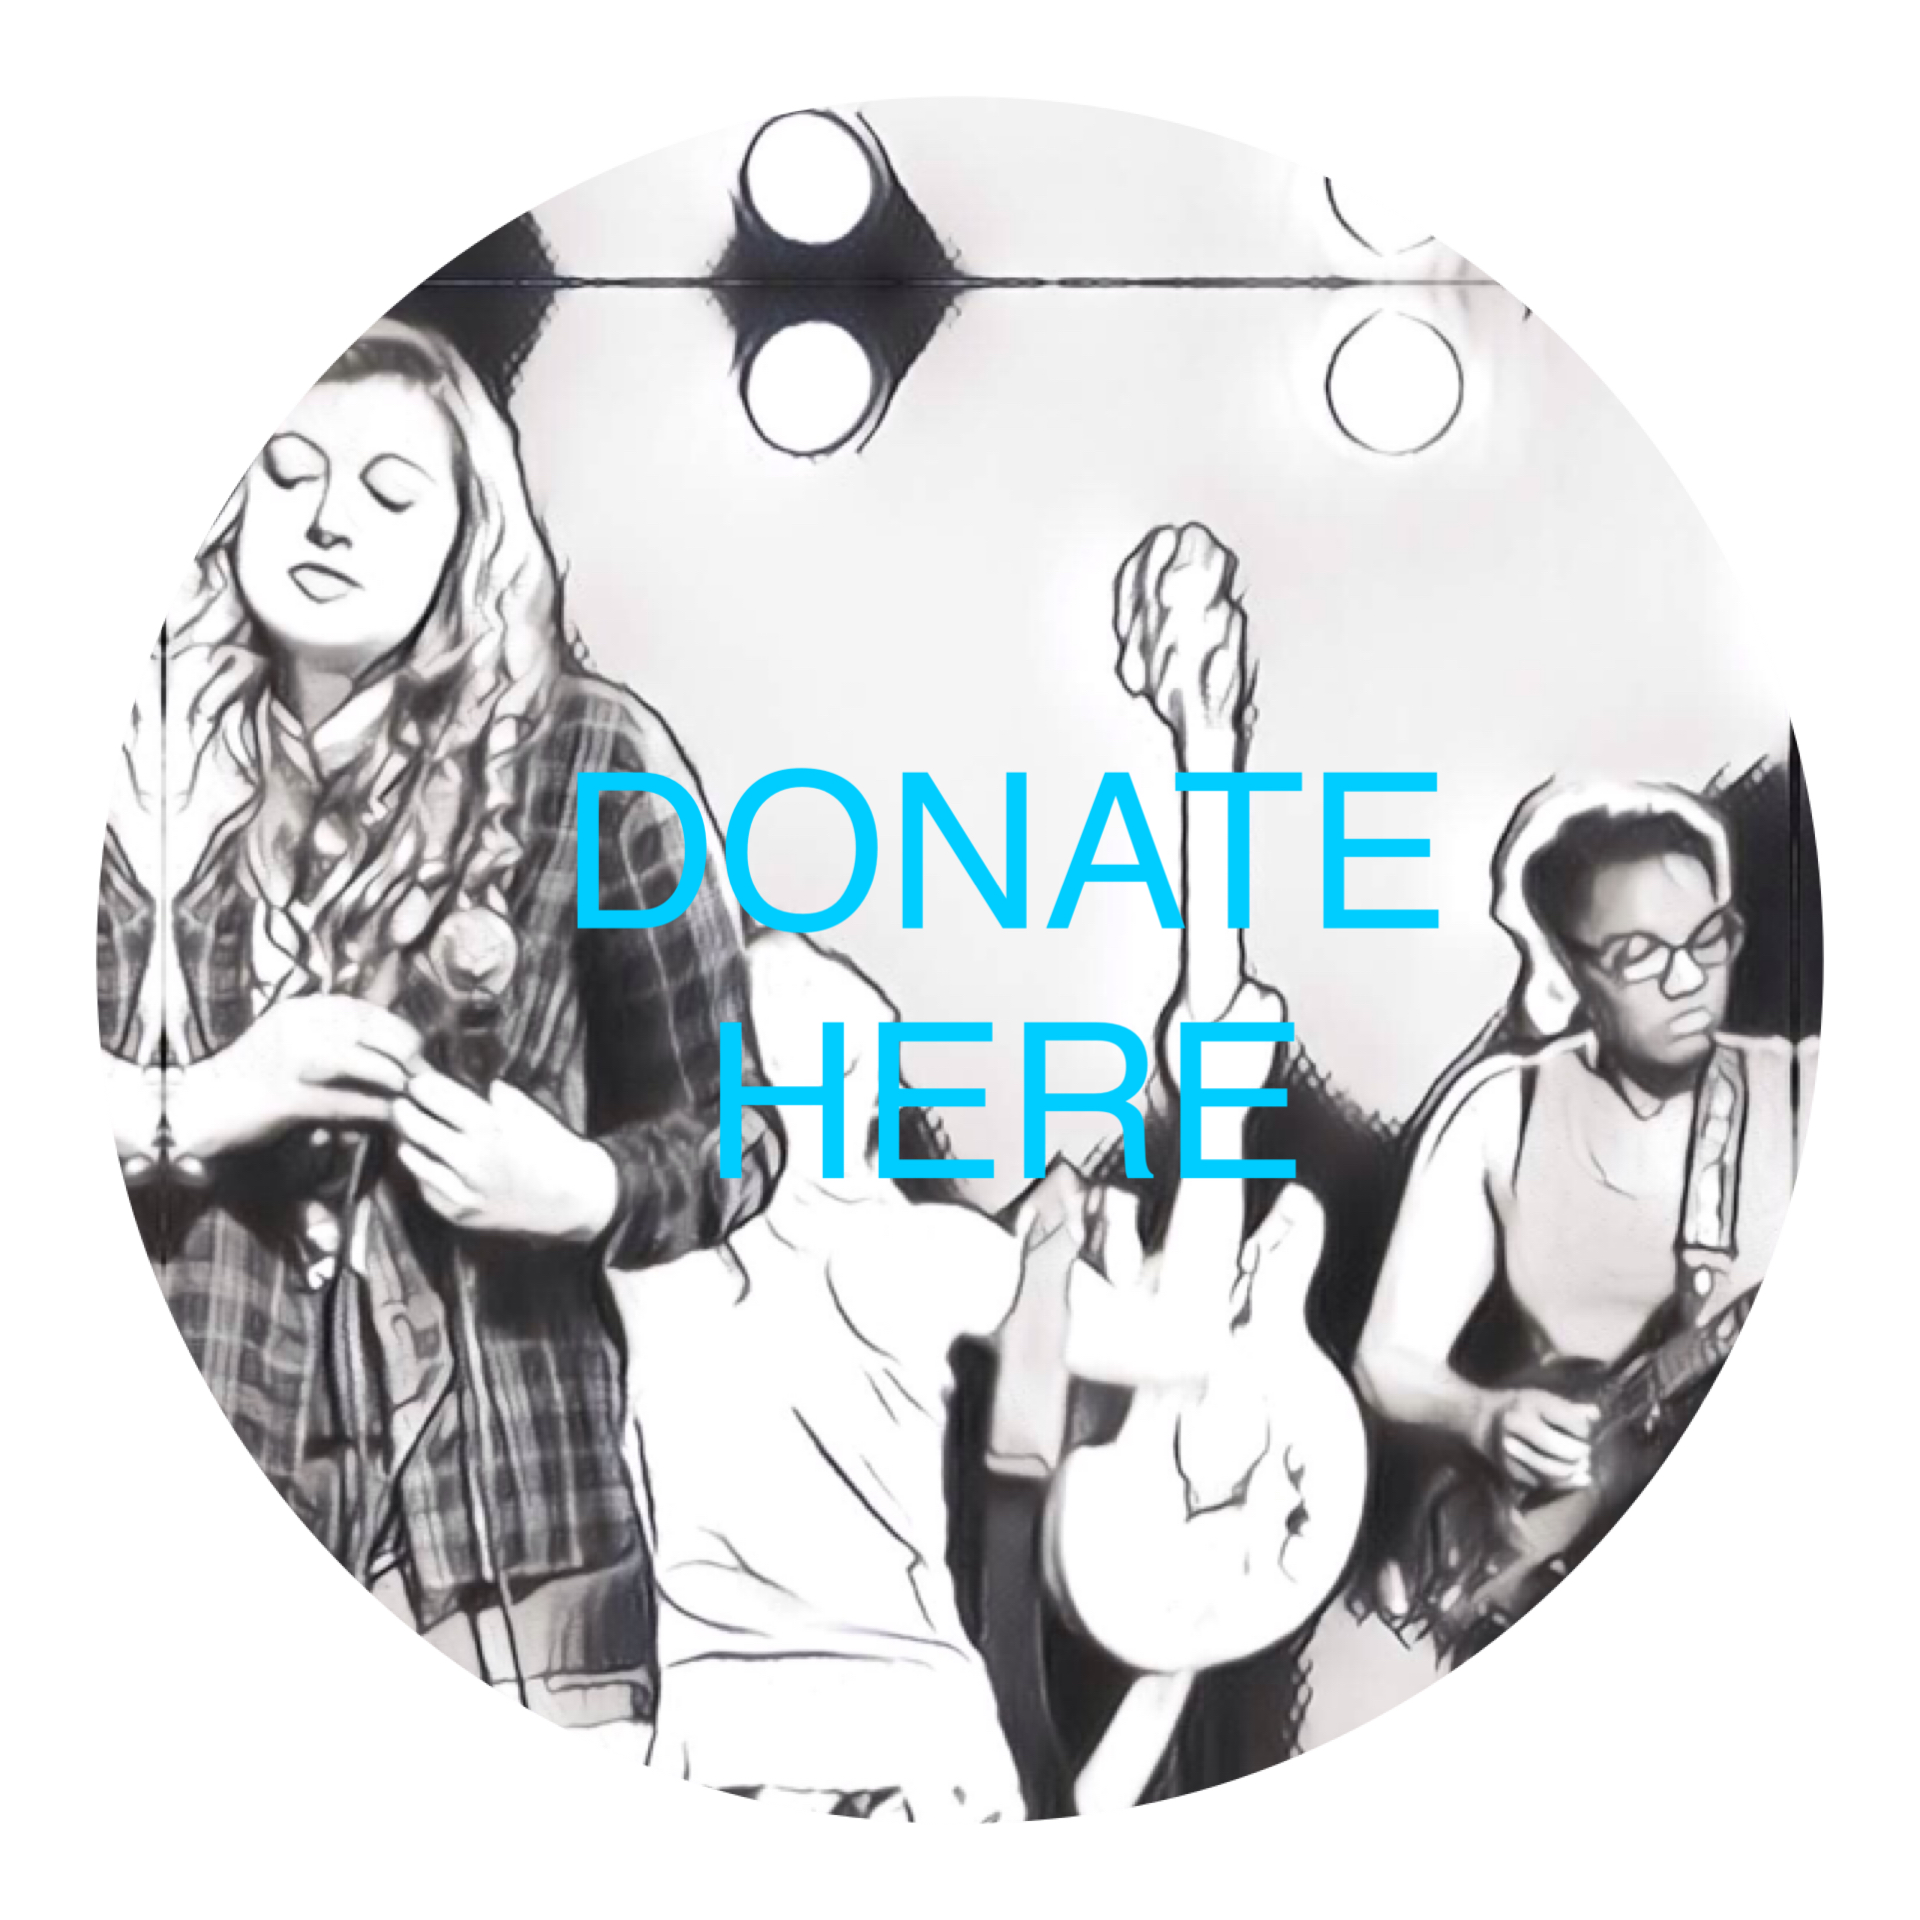 Make a one time donation or sign up to be a Sustainer by making reoccurring donations!